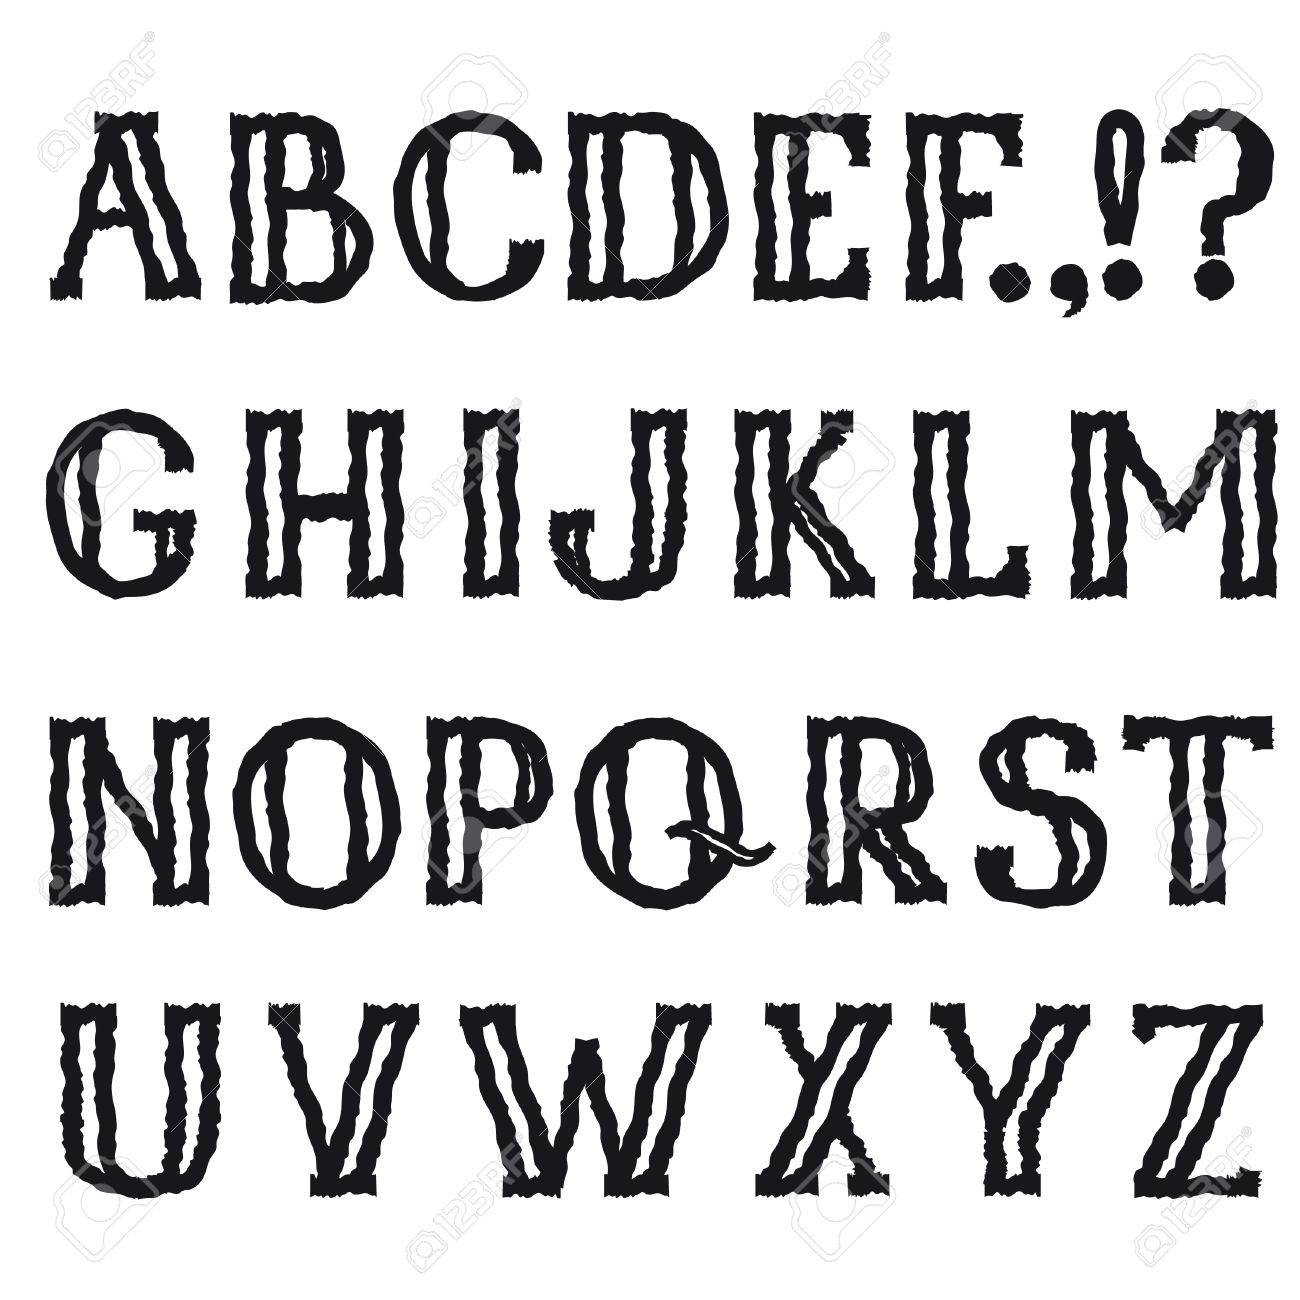 Grunge Shakily Line Marker Drawing Decorative Font Hipsters Doodle Ragged Latin Letter Characters